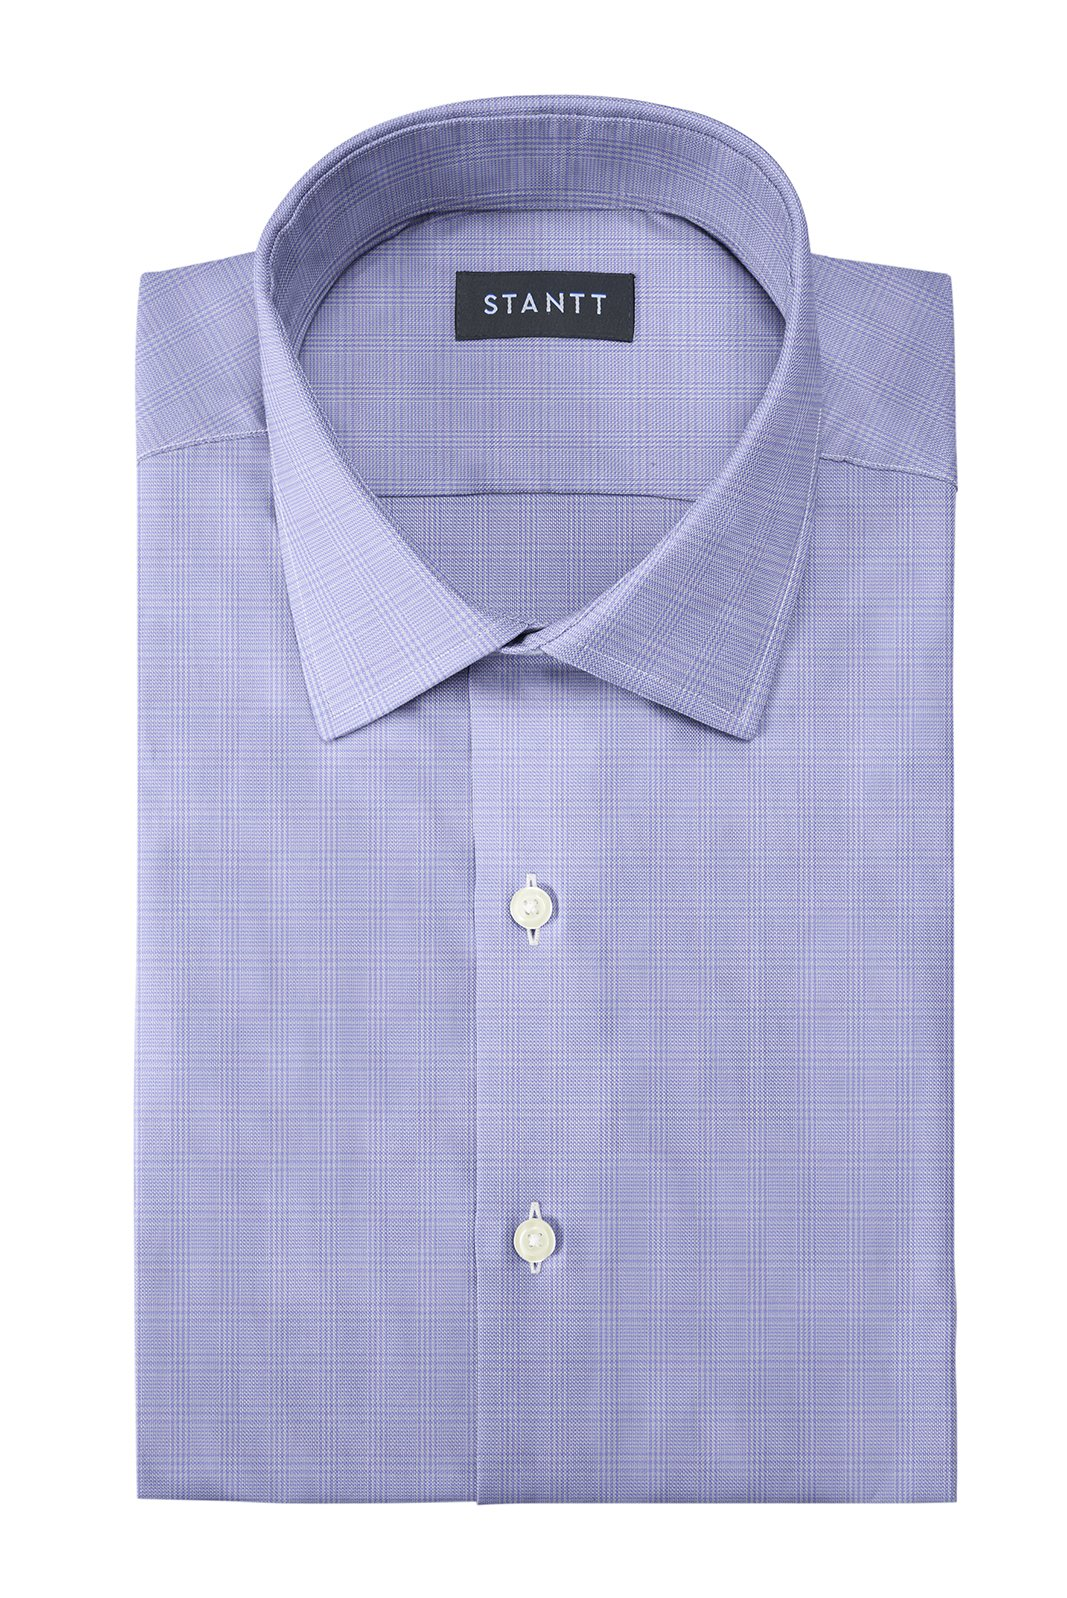 Wrinkle-Resistant Lavender Prince of Wales Check: Modified-Spread Collar, French Cuff